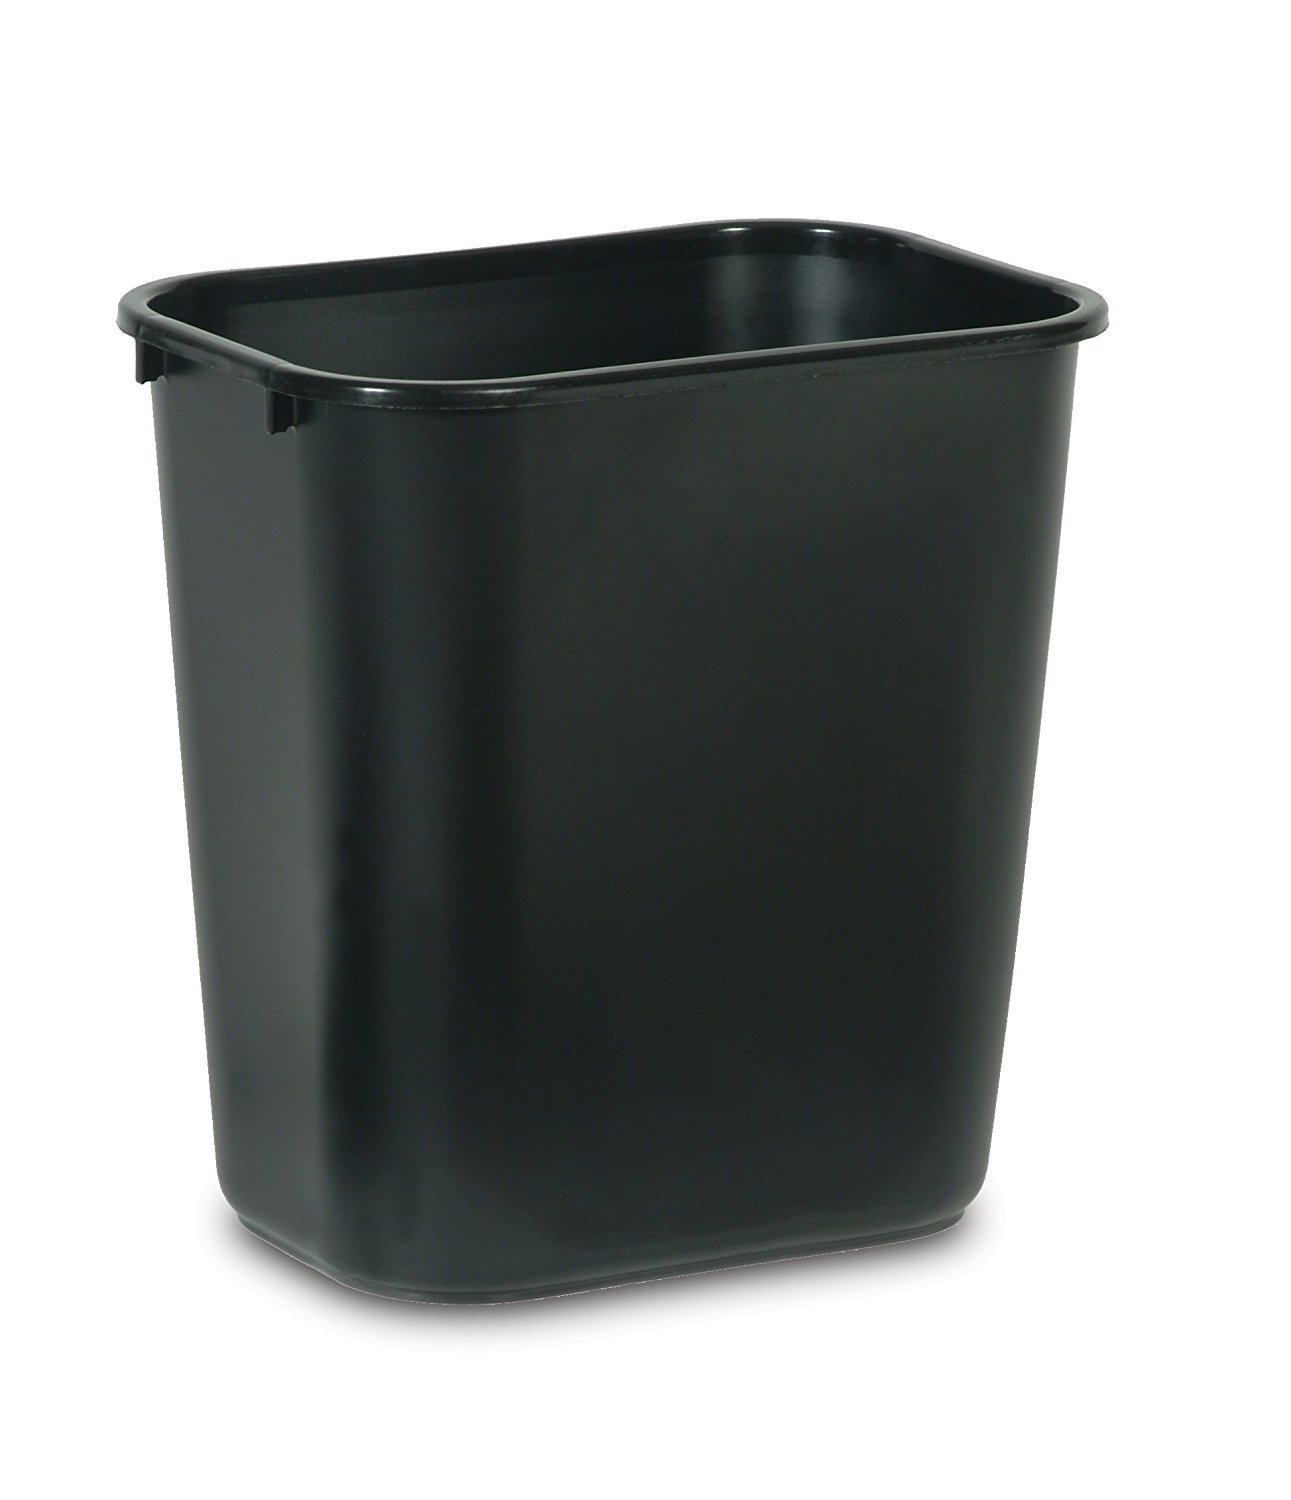 Rubbermaid Commercial Products Plastic Deskside Wastebasket, 7-Gallon, Black (pack of 12) (FG295600BLA)